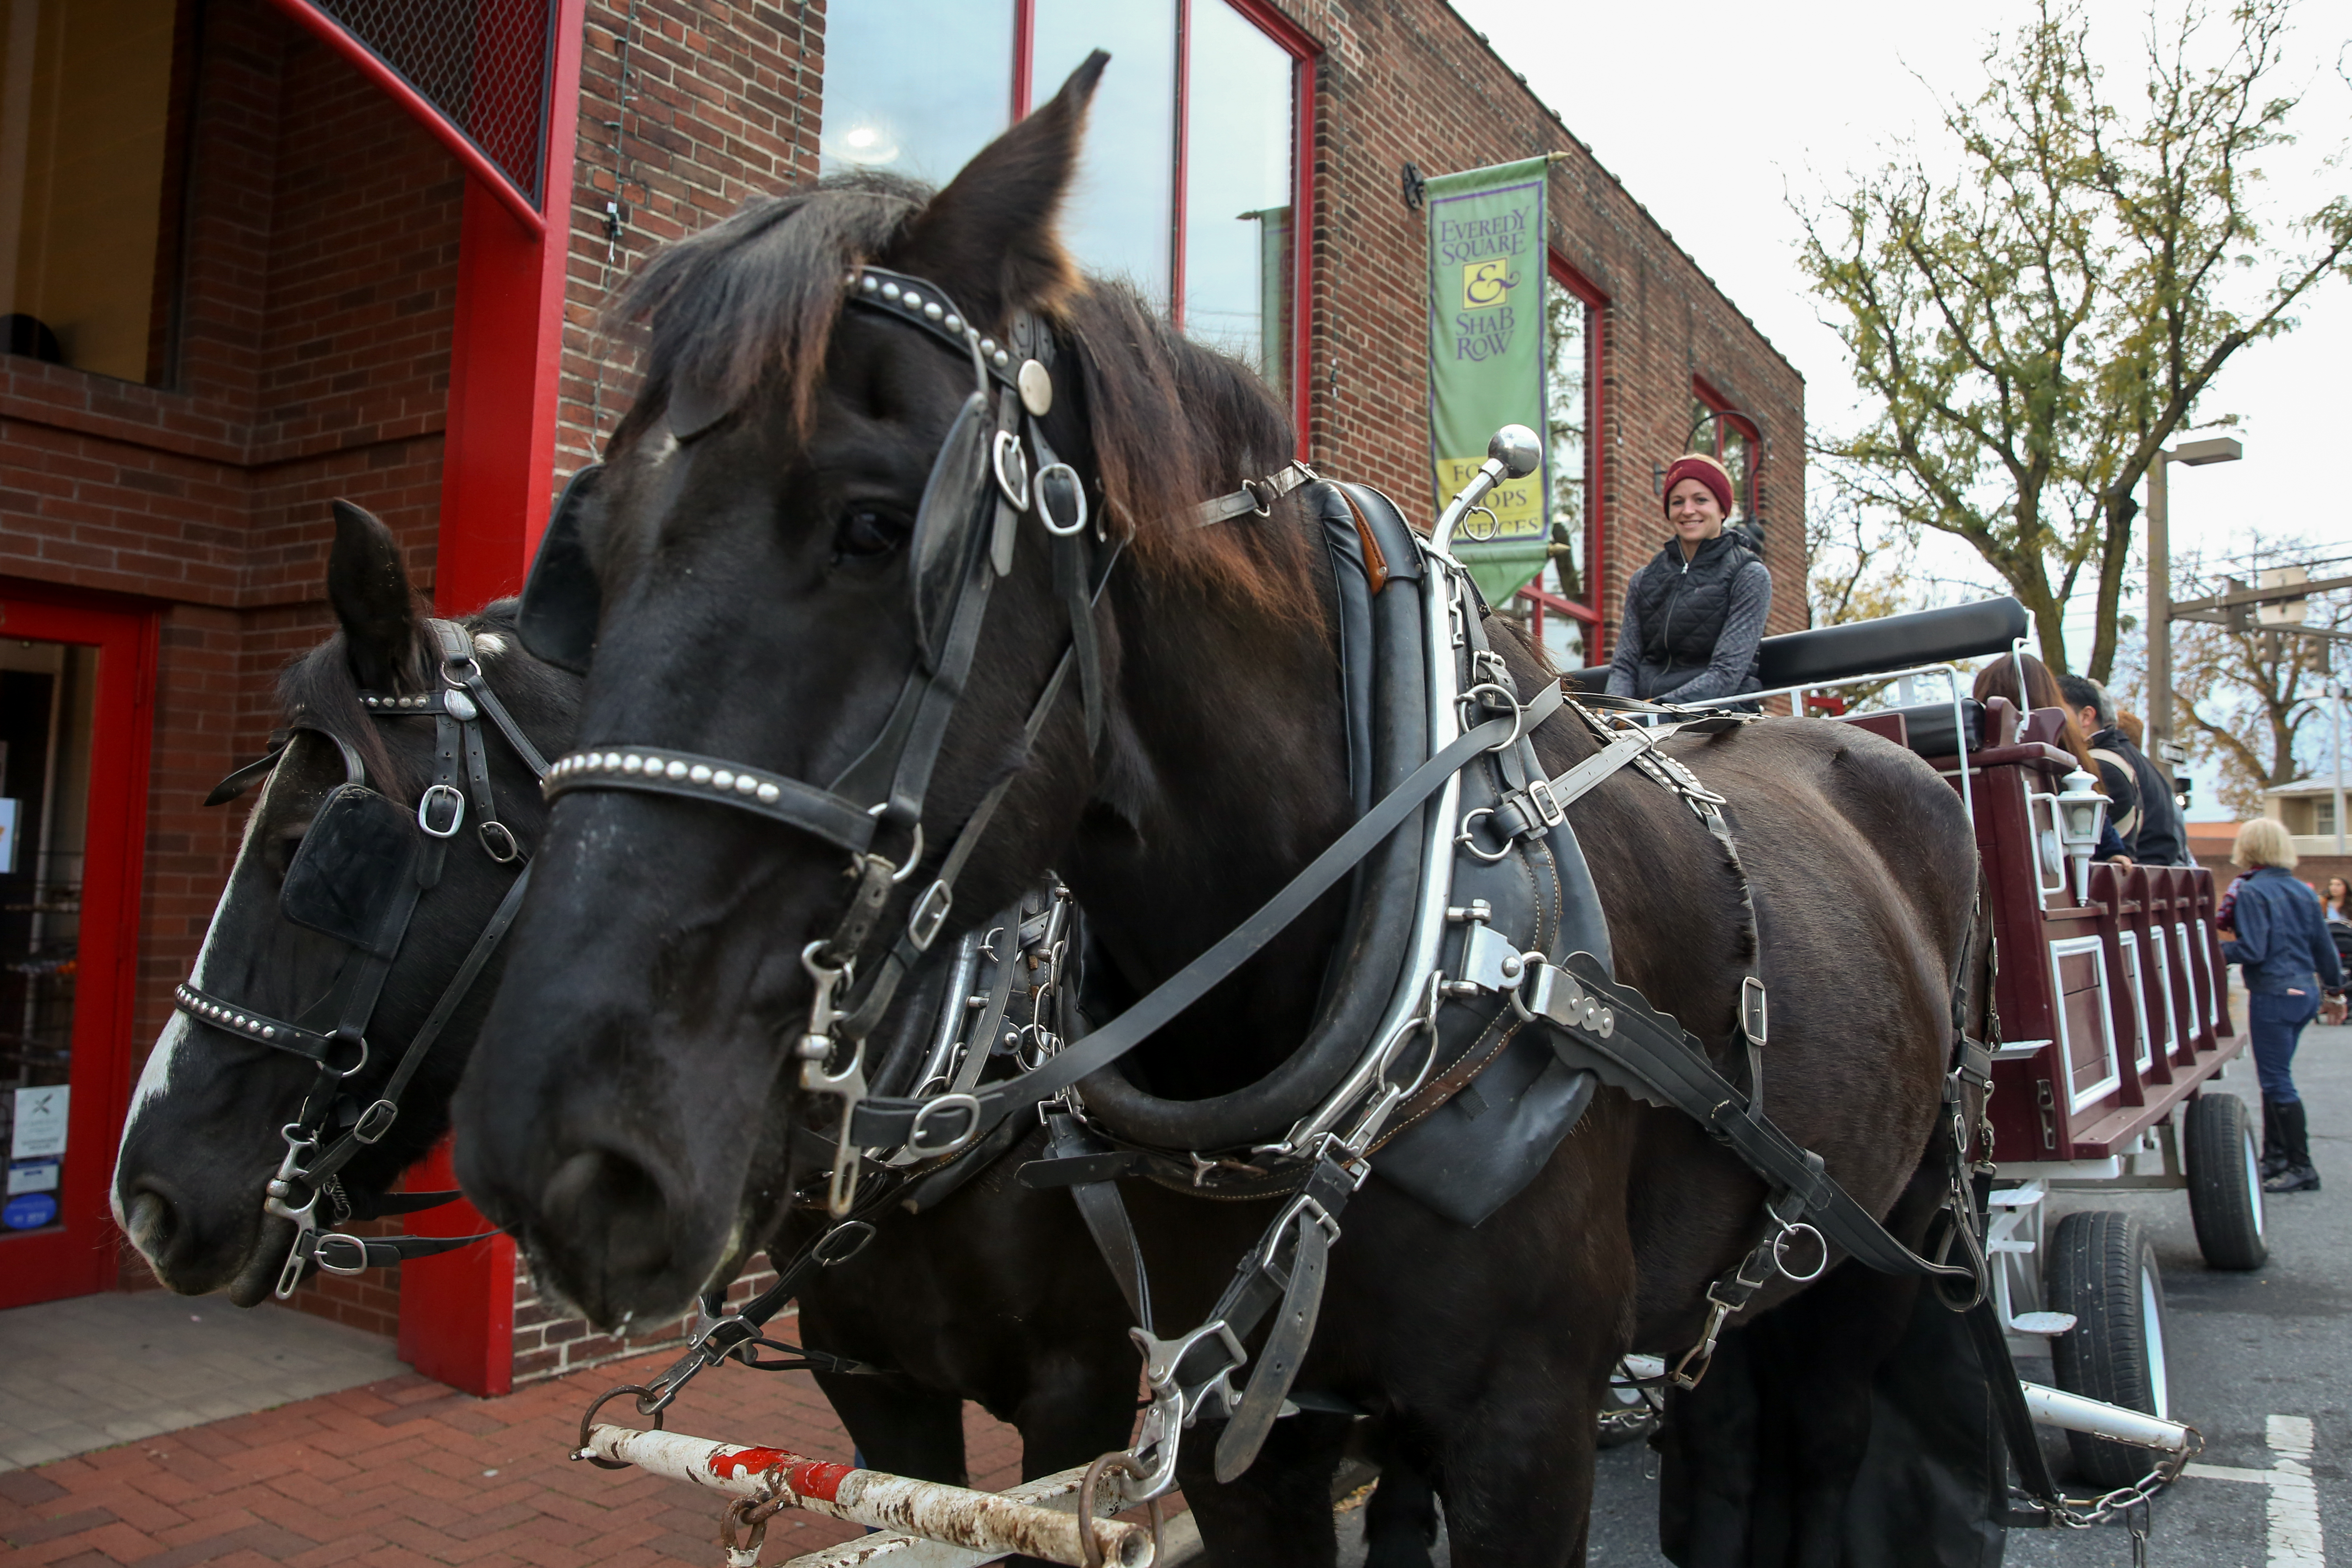 Enjoy a horse-drawn carriage ride around Downtown Frederick. Each carriage ride lasts approximately 20 minutes and can accommodate up to 12 passengers.{ }(Image: Amanda Andrade-Rhoades/ DC Refined)